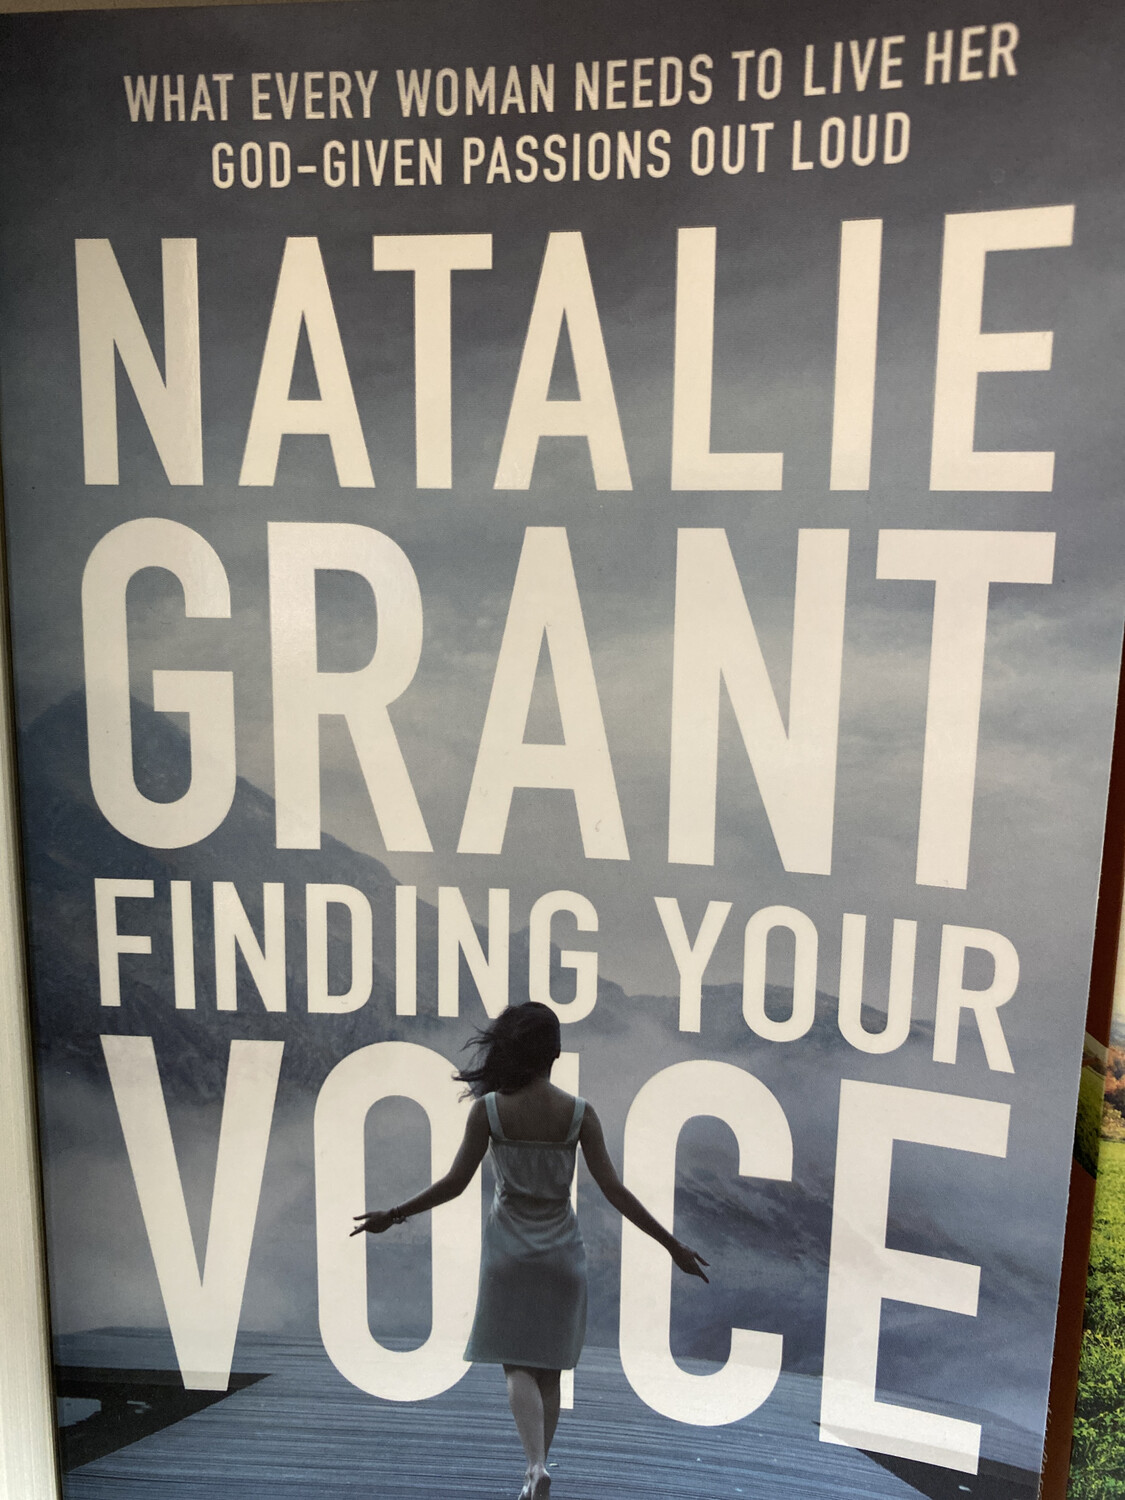 GRANT, Finding Your Voice